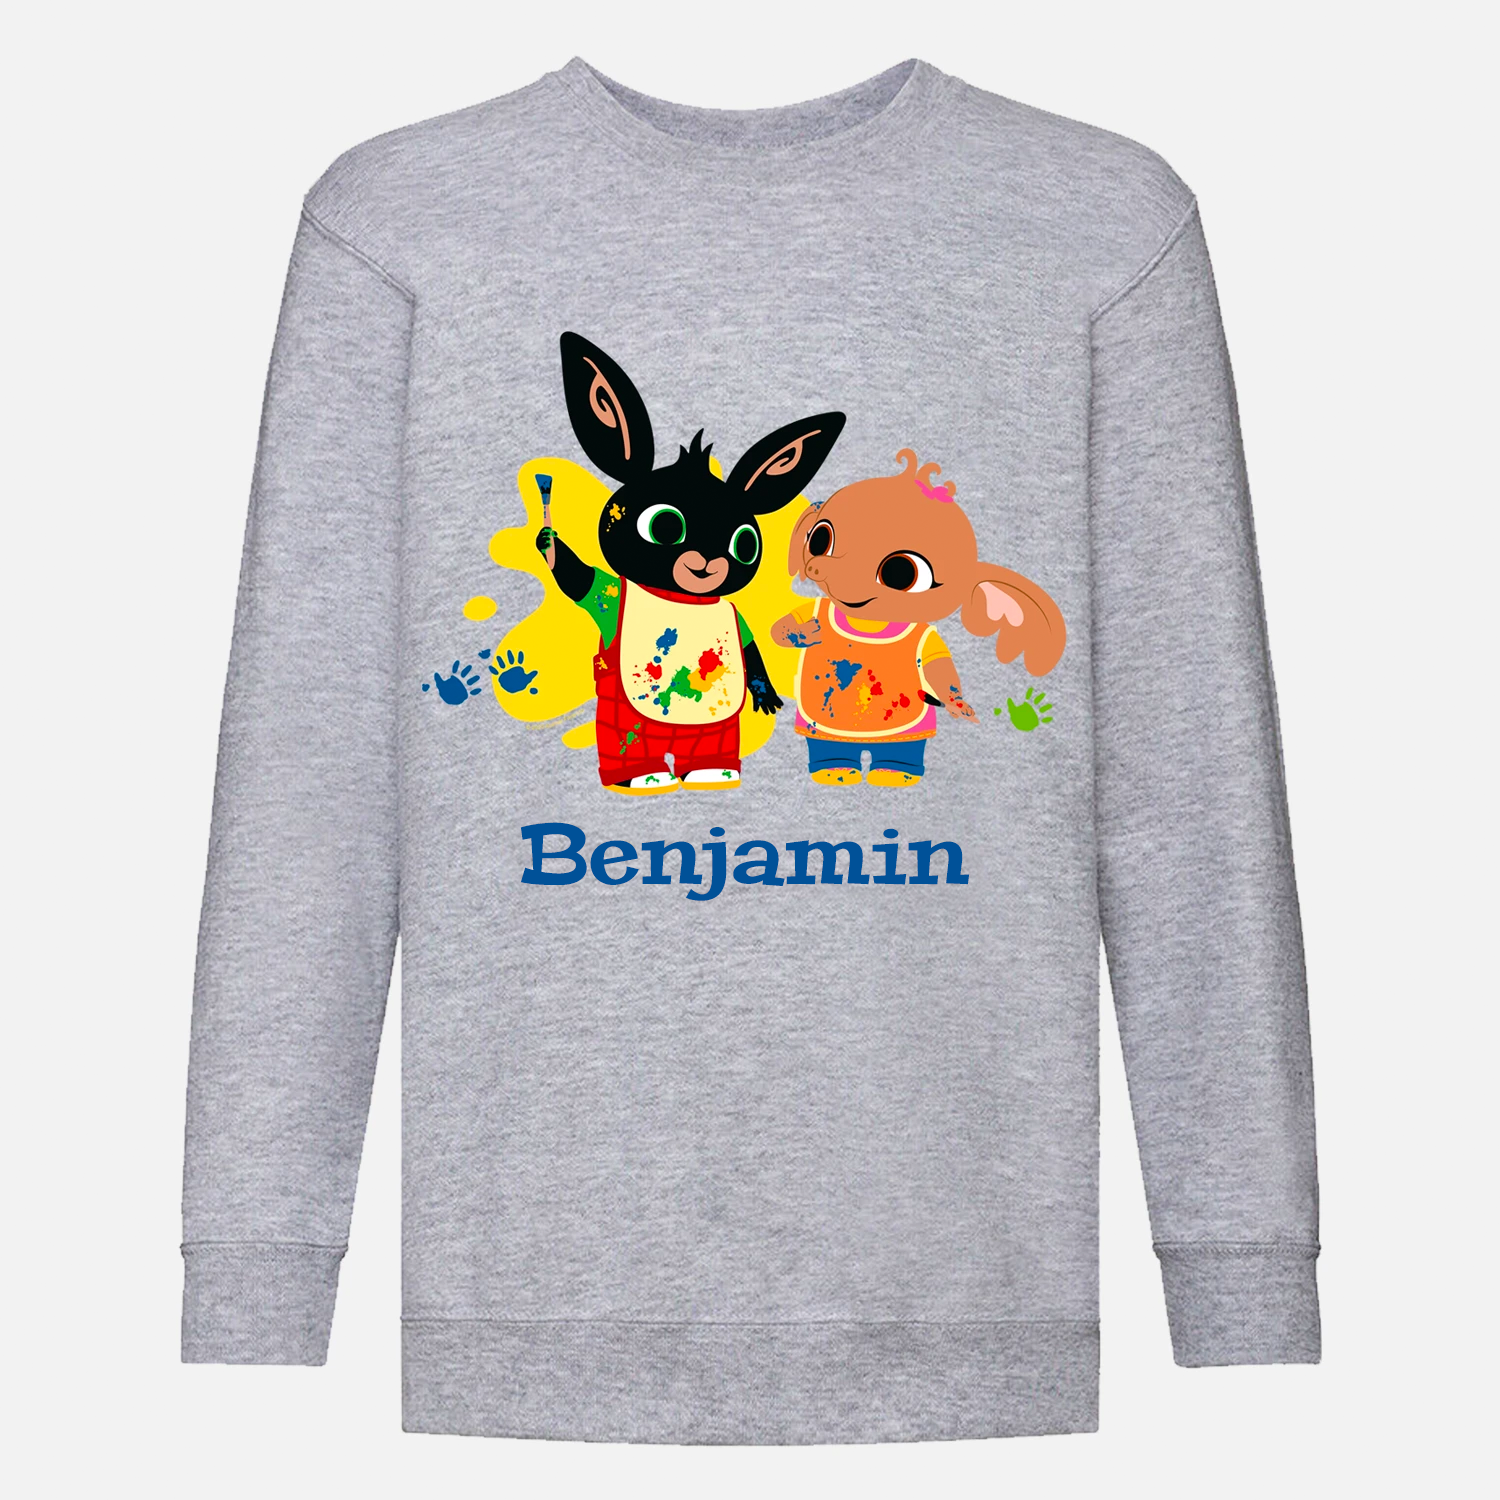 Bing & Sula Playtime Sweatshirt